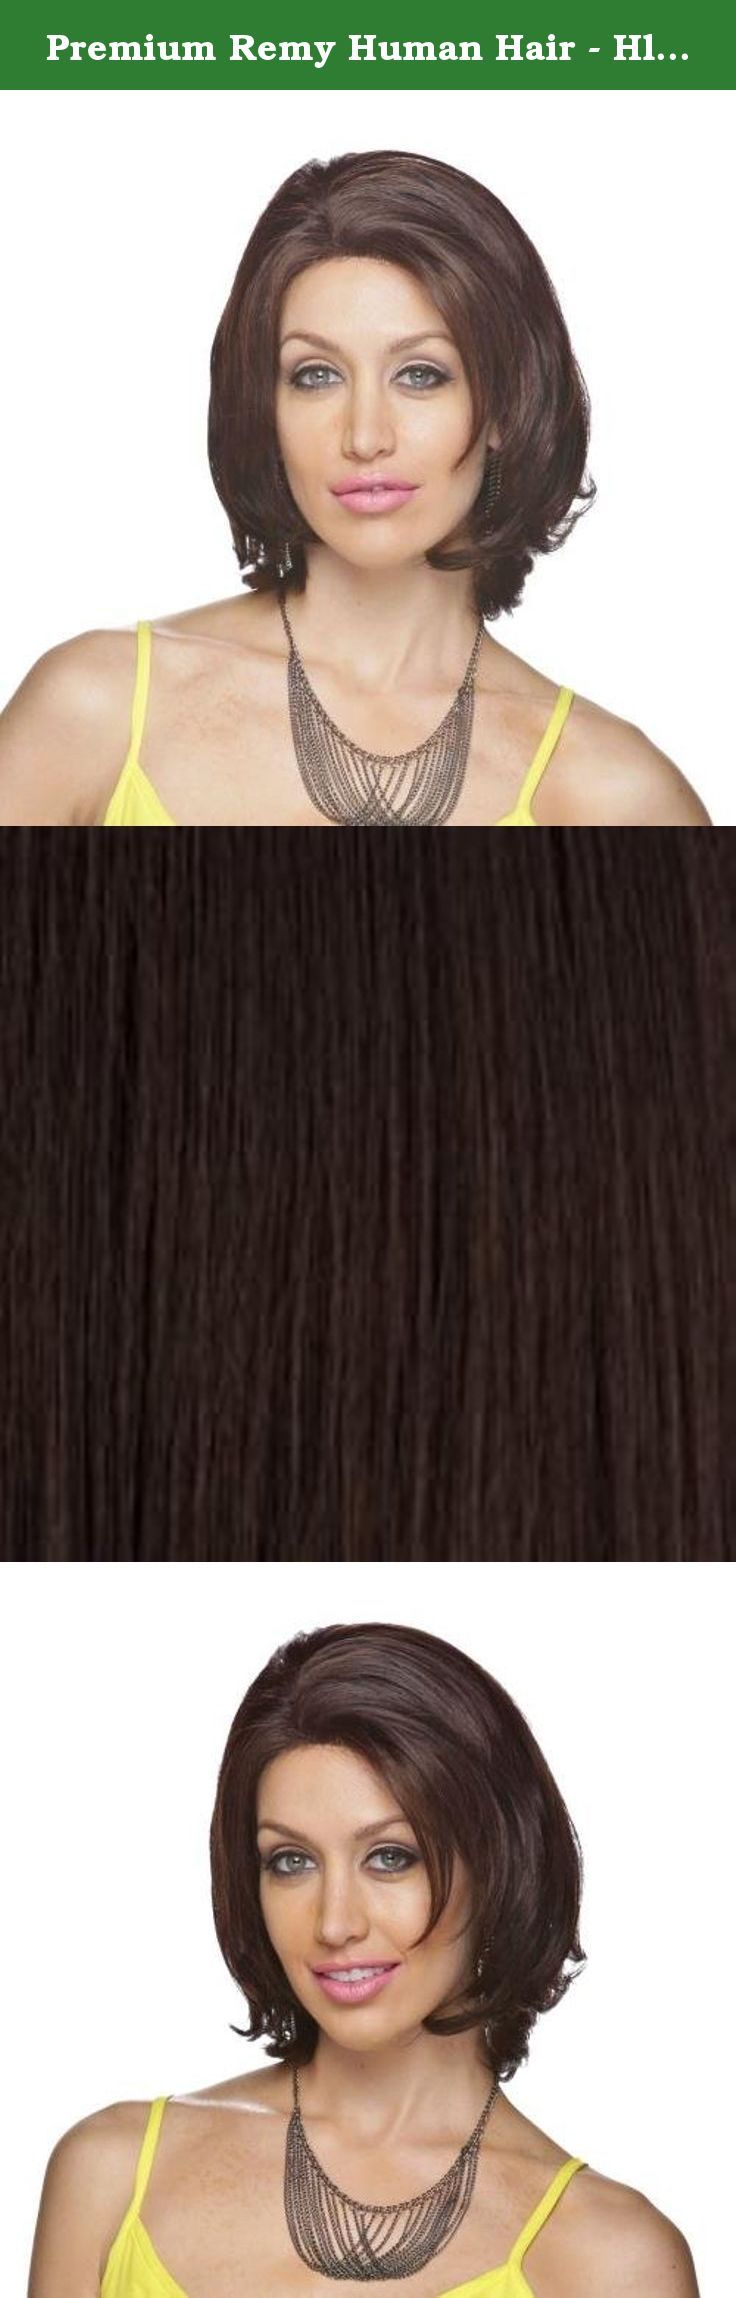 Premium Remy Human Hair - Hl Renee, Light Brown(4). MEDIUM LENGTH WITH LOOSE CURL *Material: Human *Type: Full Wig *Style: Wavy *Product Name: Human Full Wig - H-Orchid.